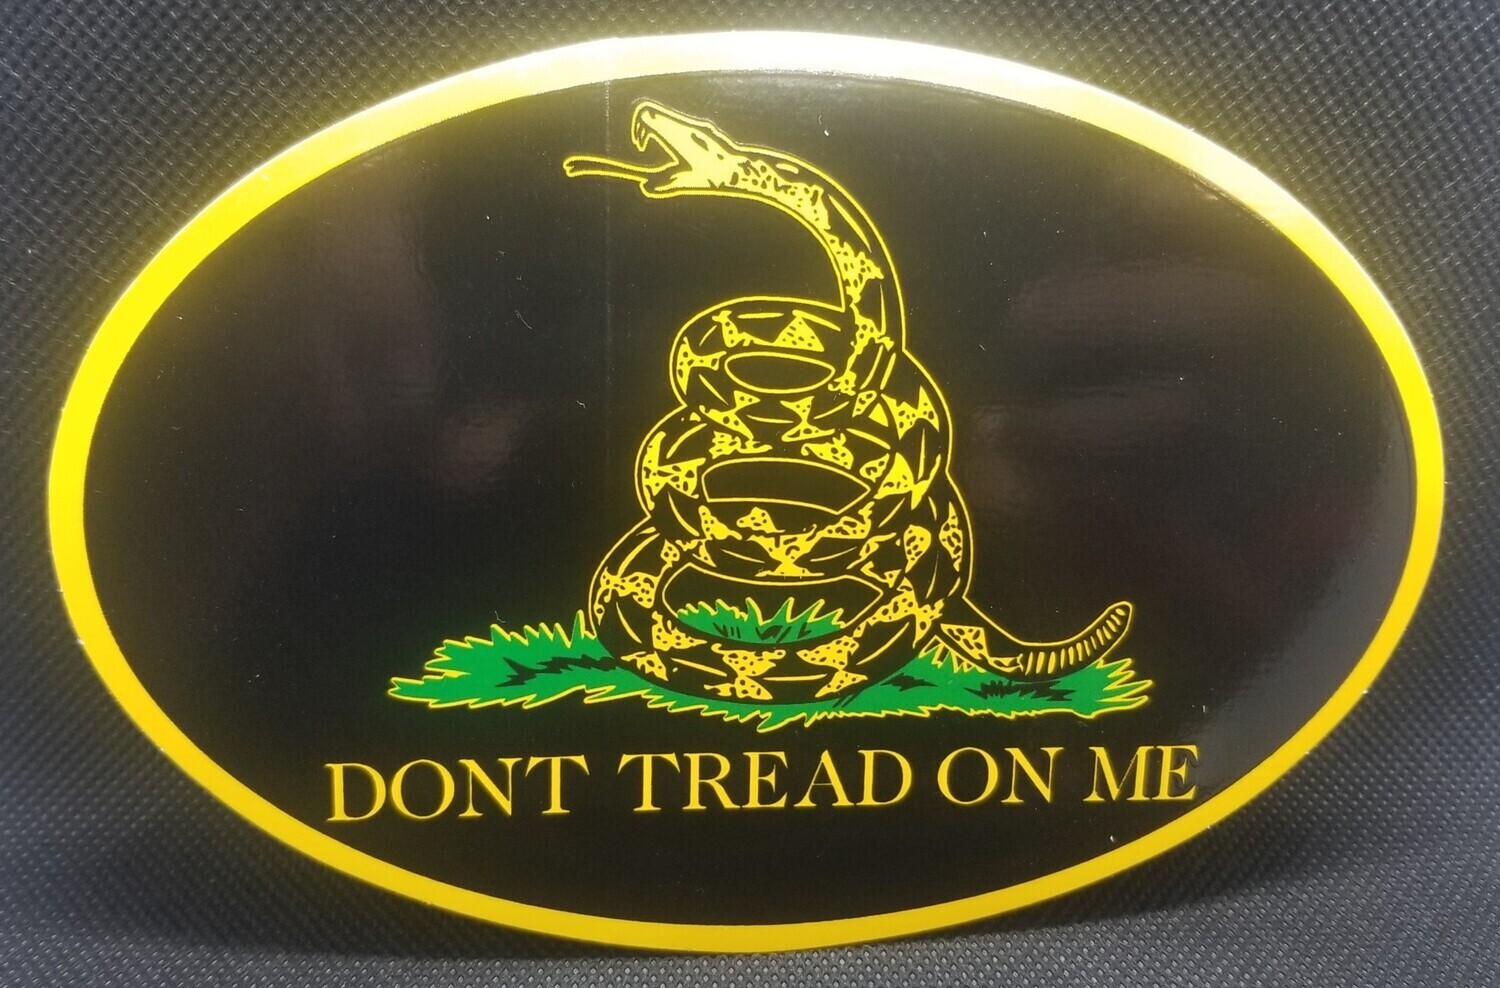 Don't Tread On Me - Oval Sticker - Tactical